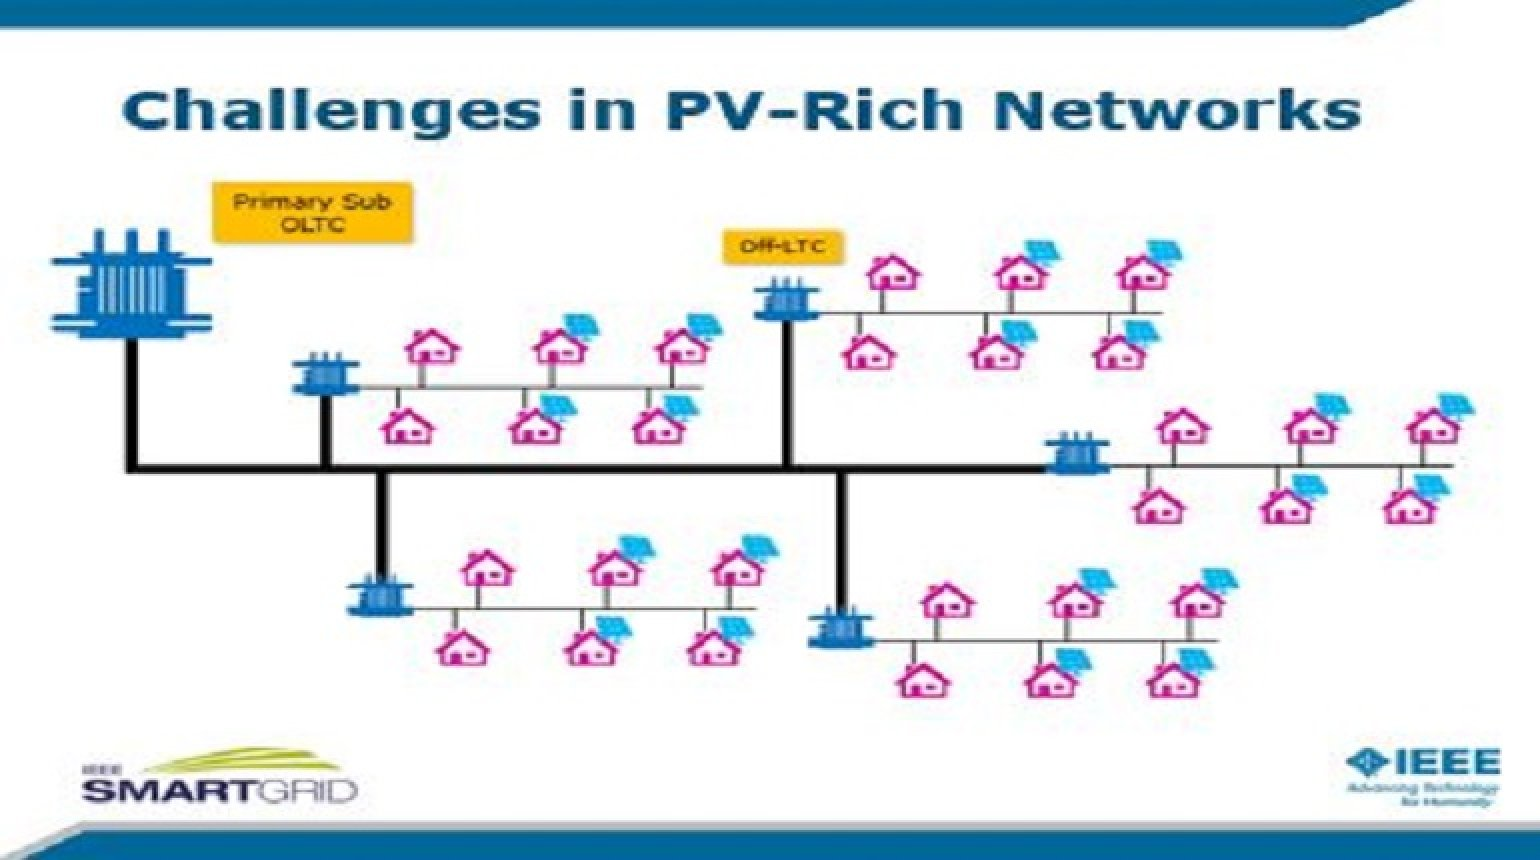 PV-Rich Communities, Storage, and Flexibility: The Need for Distribution System Operators presented by Luis(Nando) Ochoa